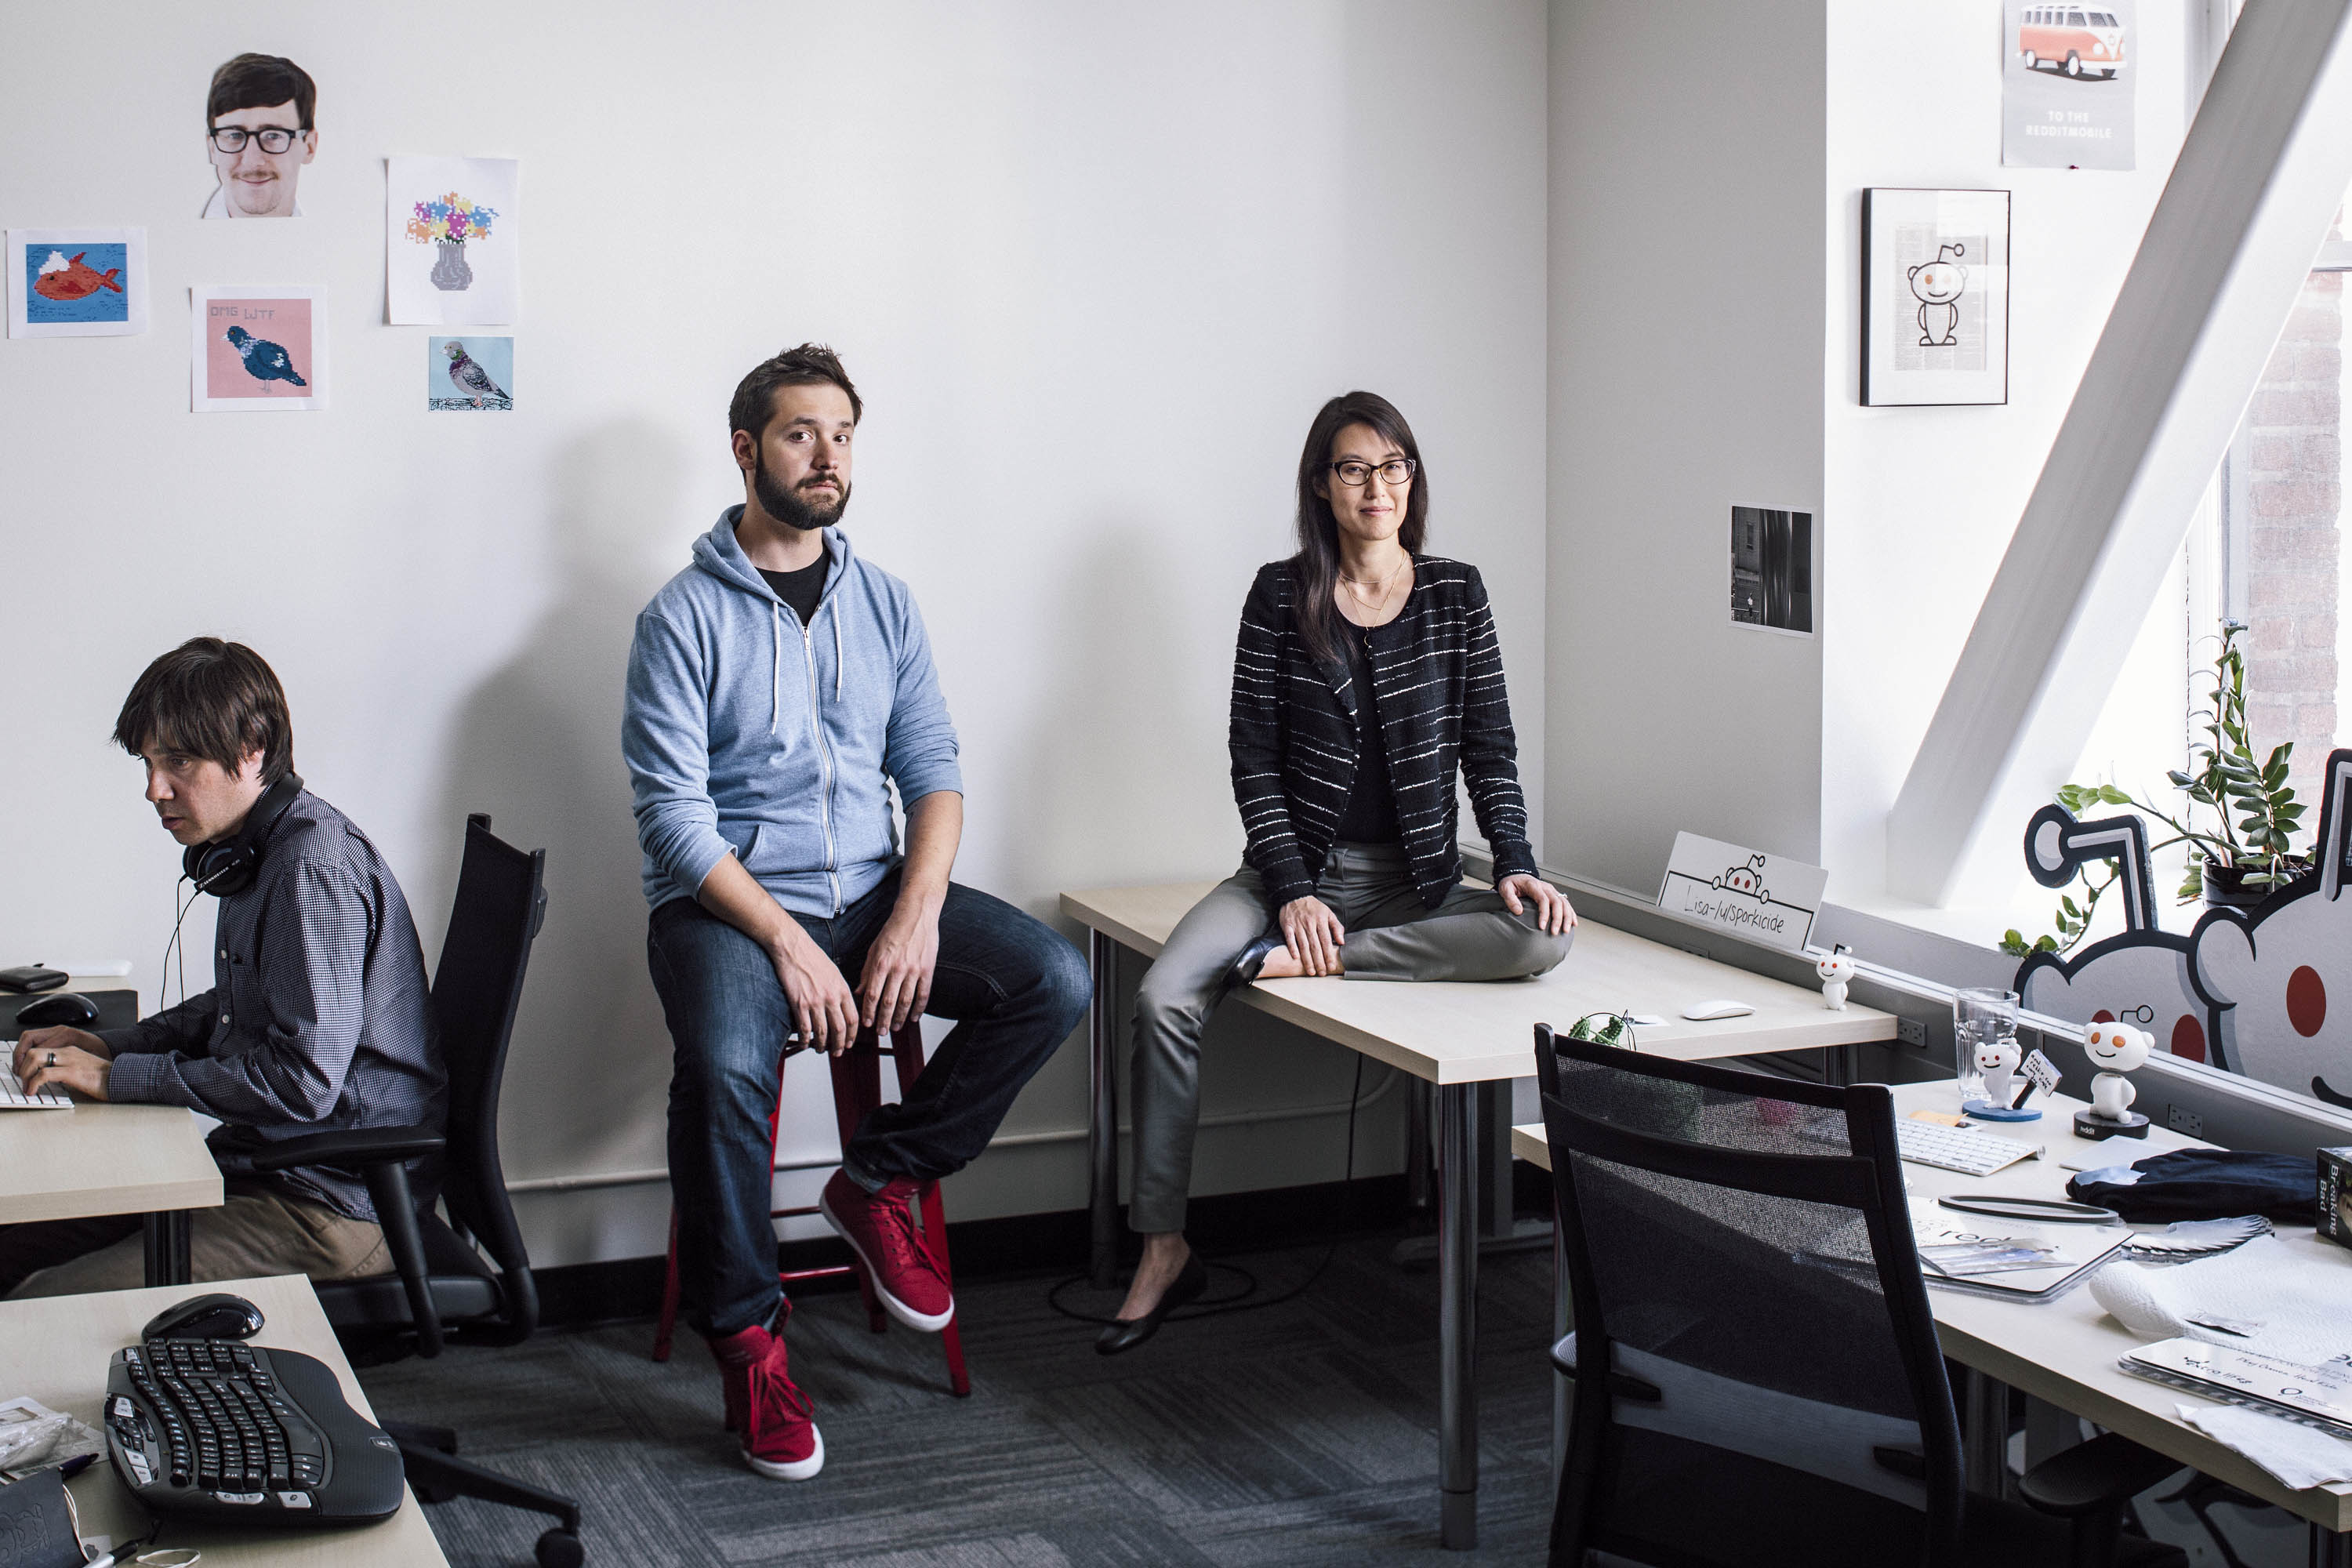 Reddit co-founder and executive chairman Alexis Ohanian and interim CEO Ellen Pao in the company's San Francisco headquarters.